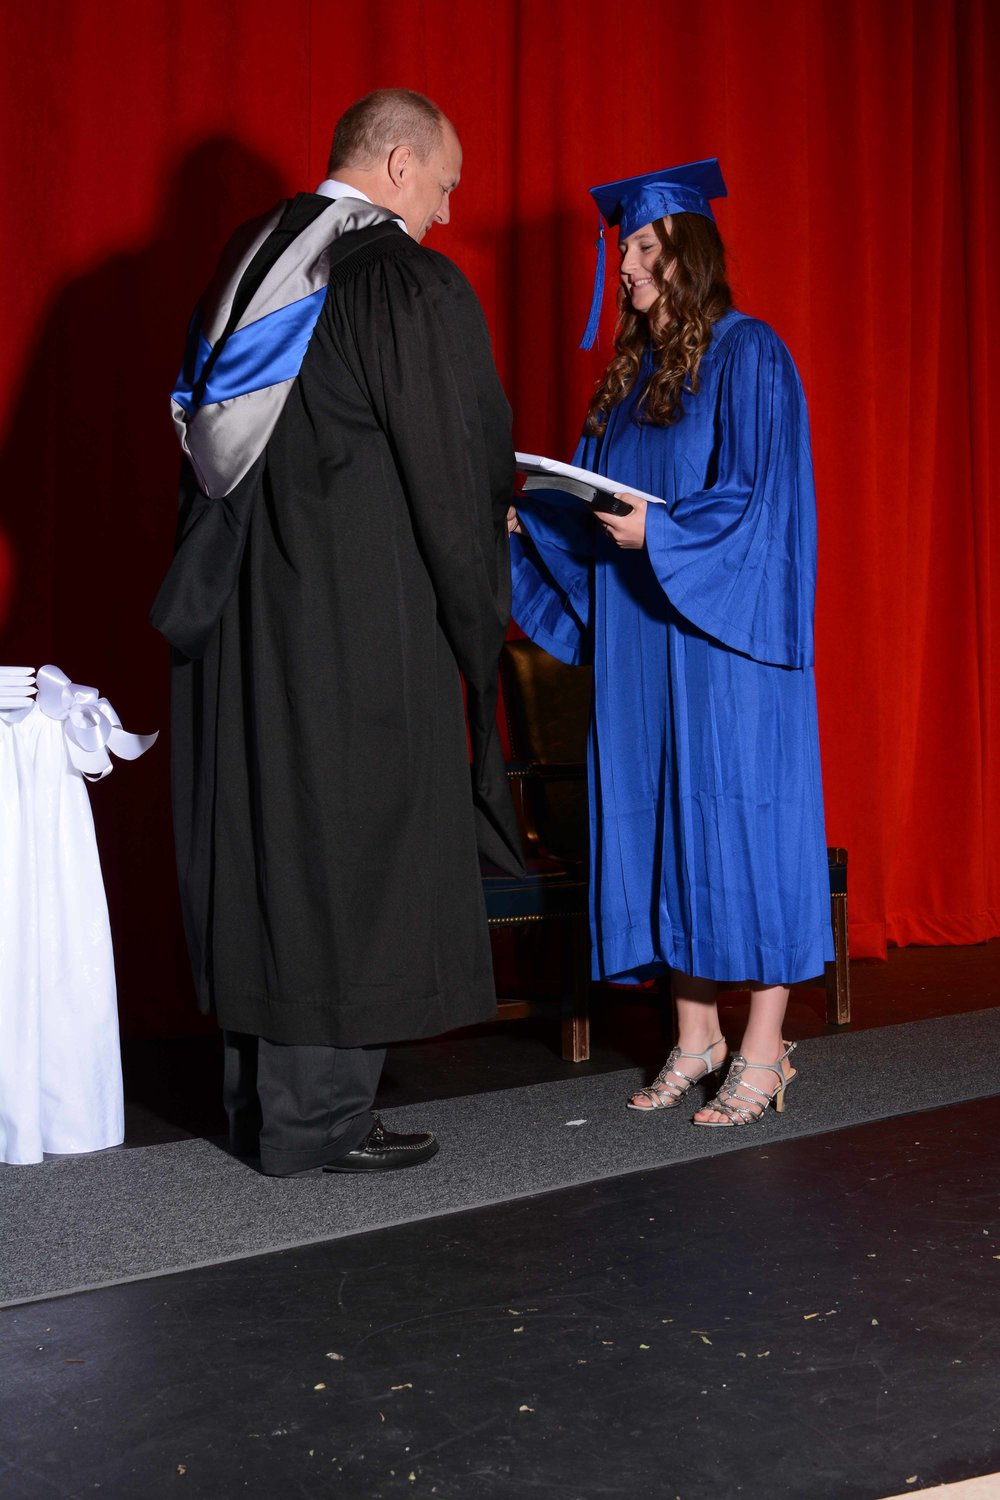 May15 HardingGraduation31.jpg